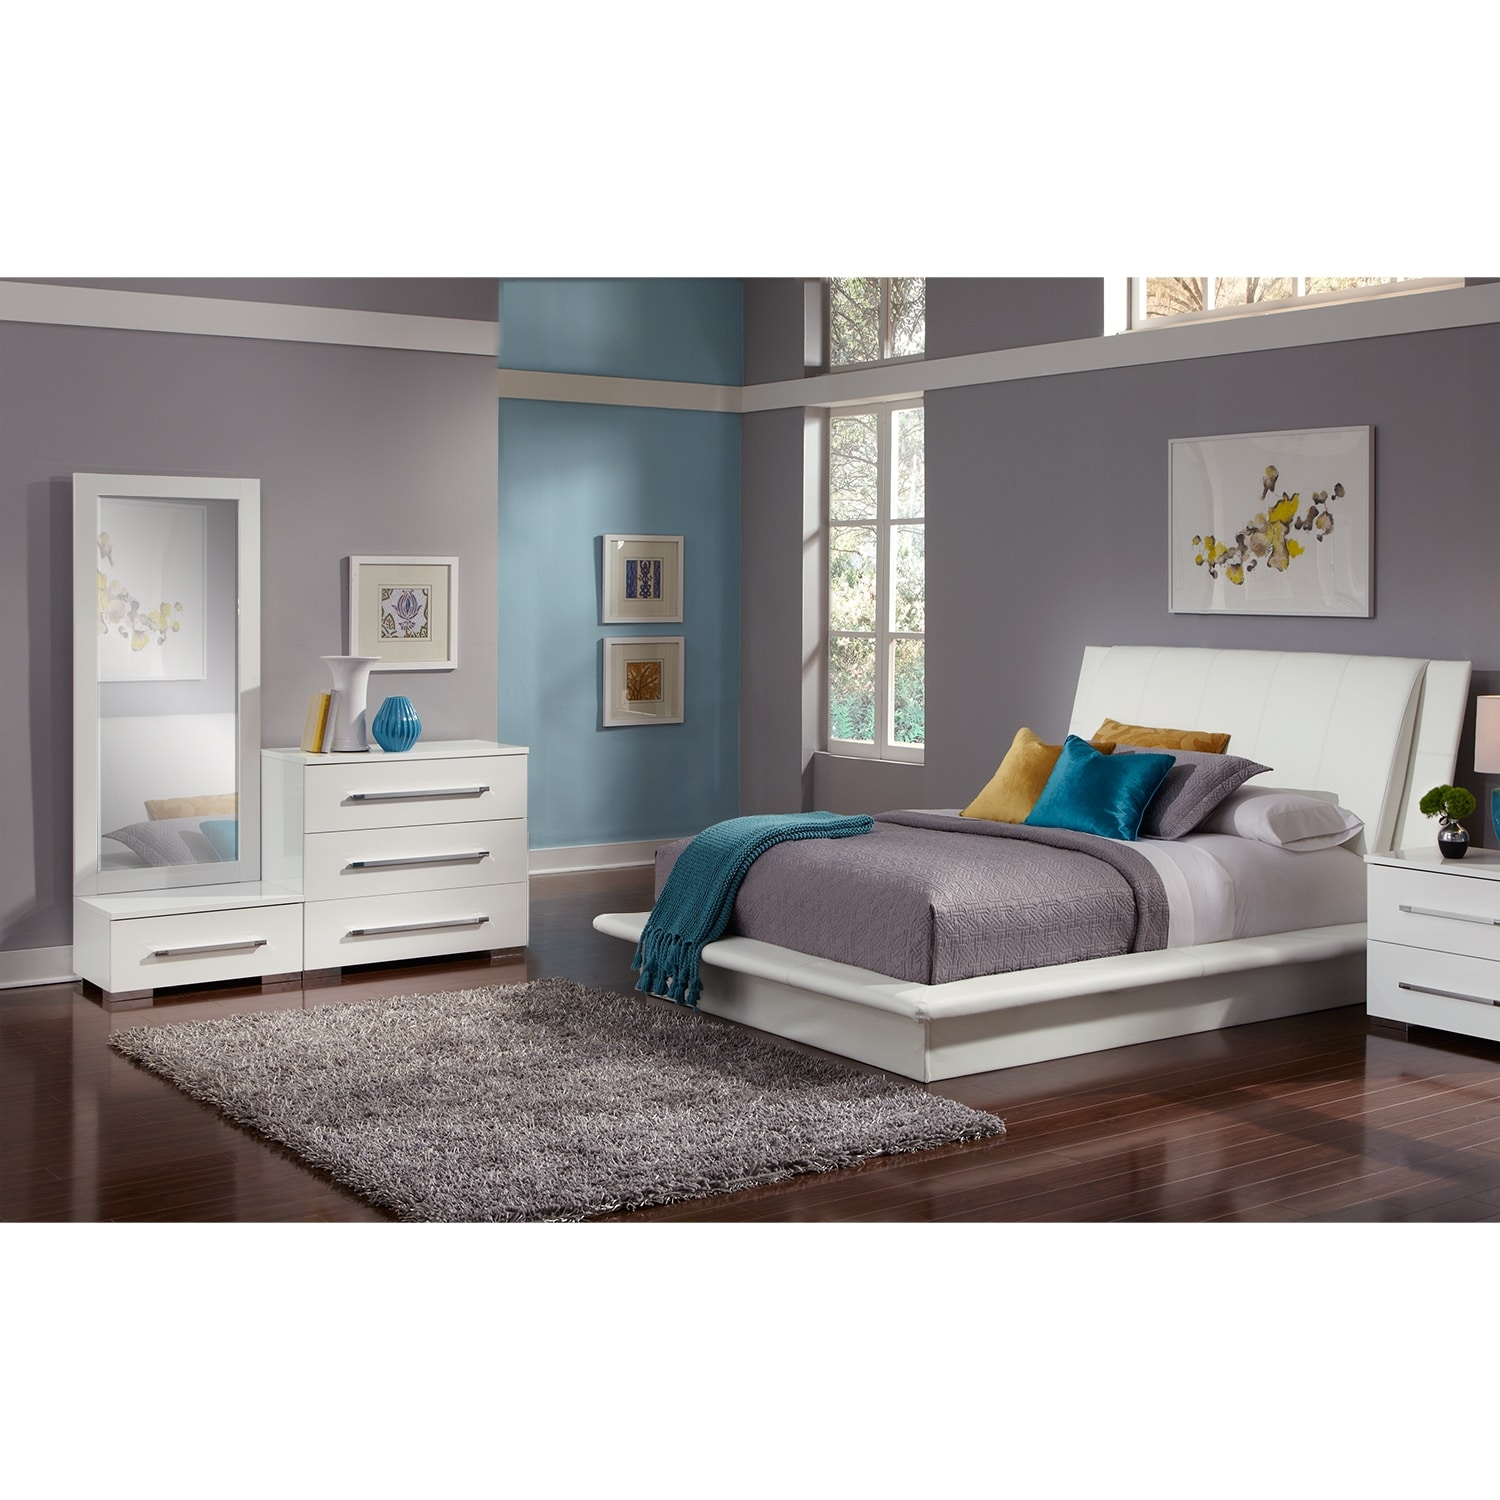 Bedroom Furniture - Dimora 5-Piece King Upholstered Bedroom Set - White